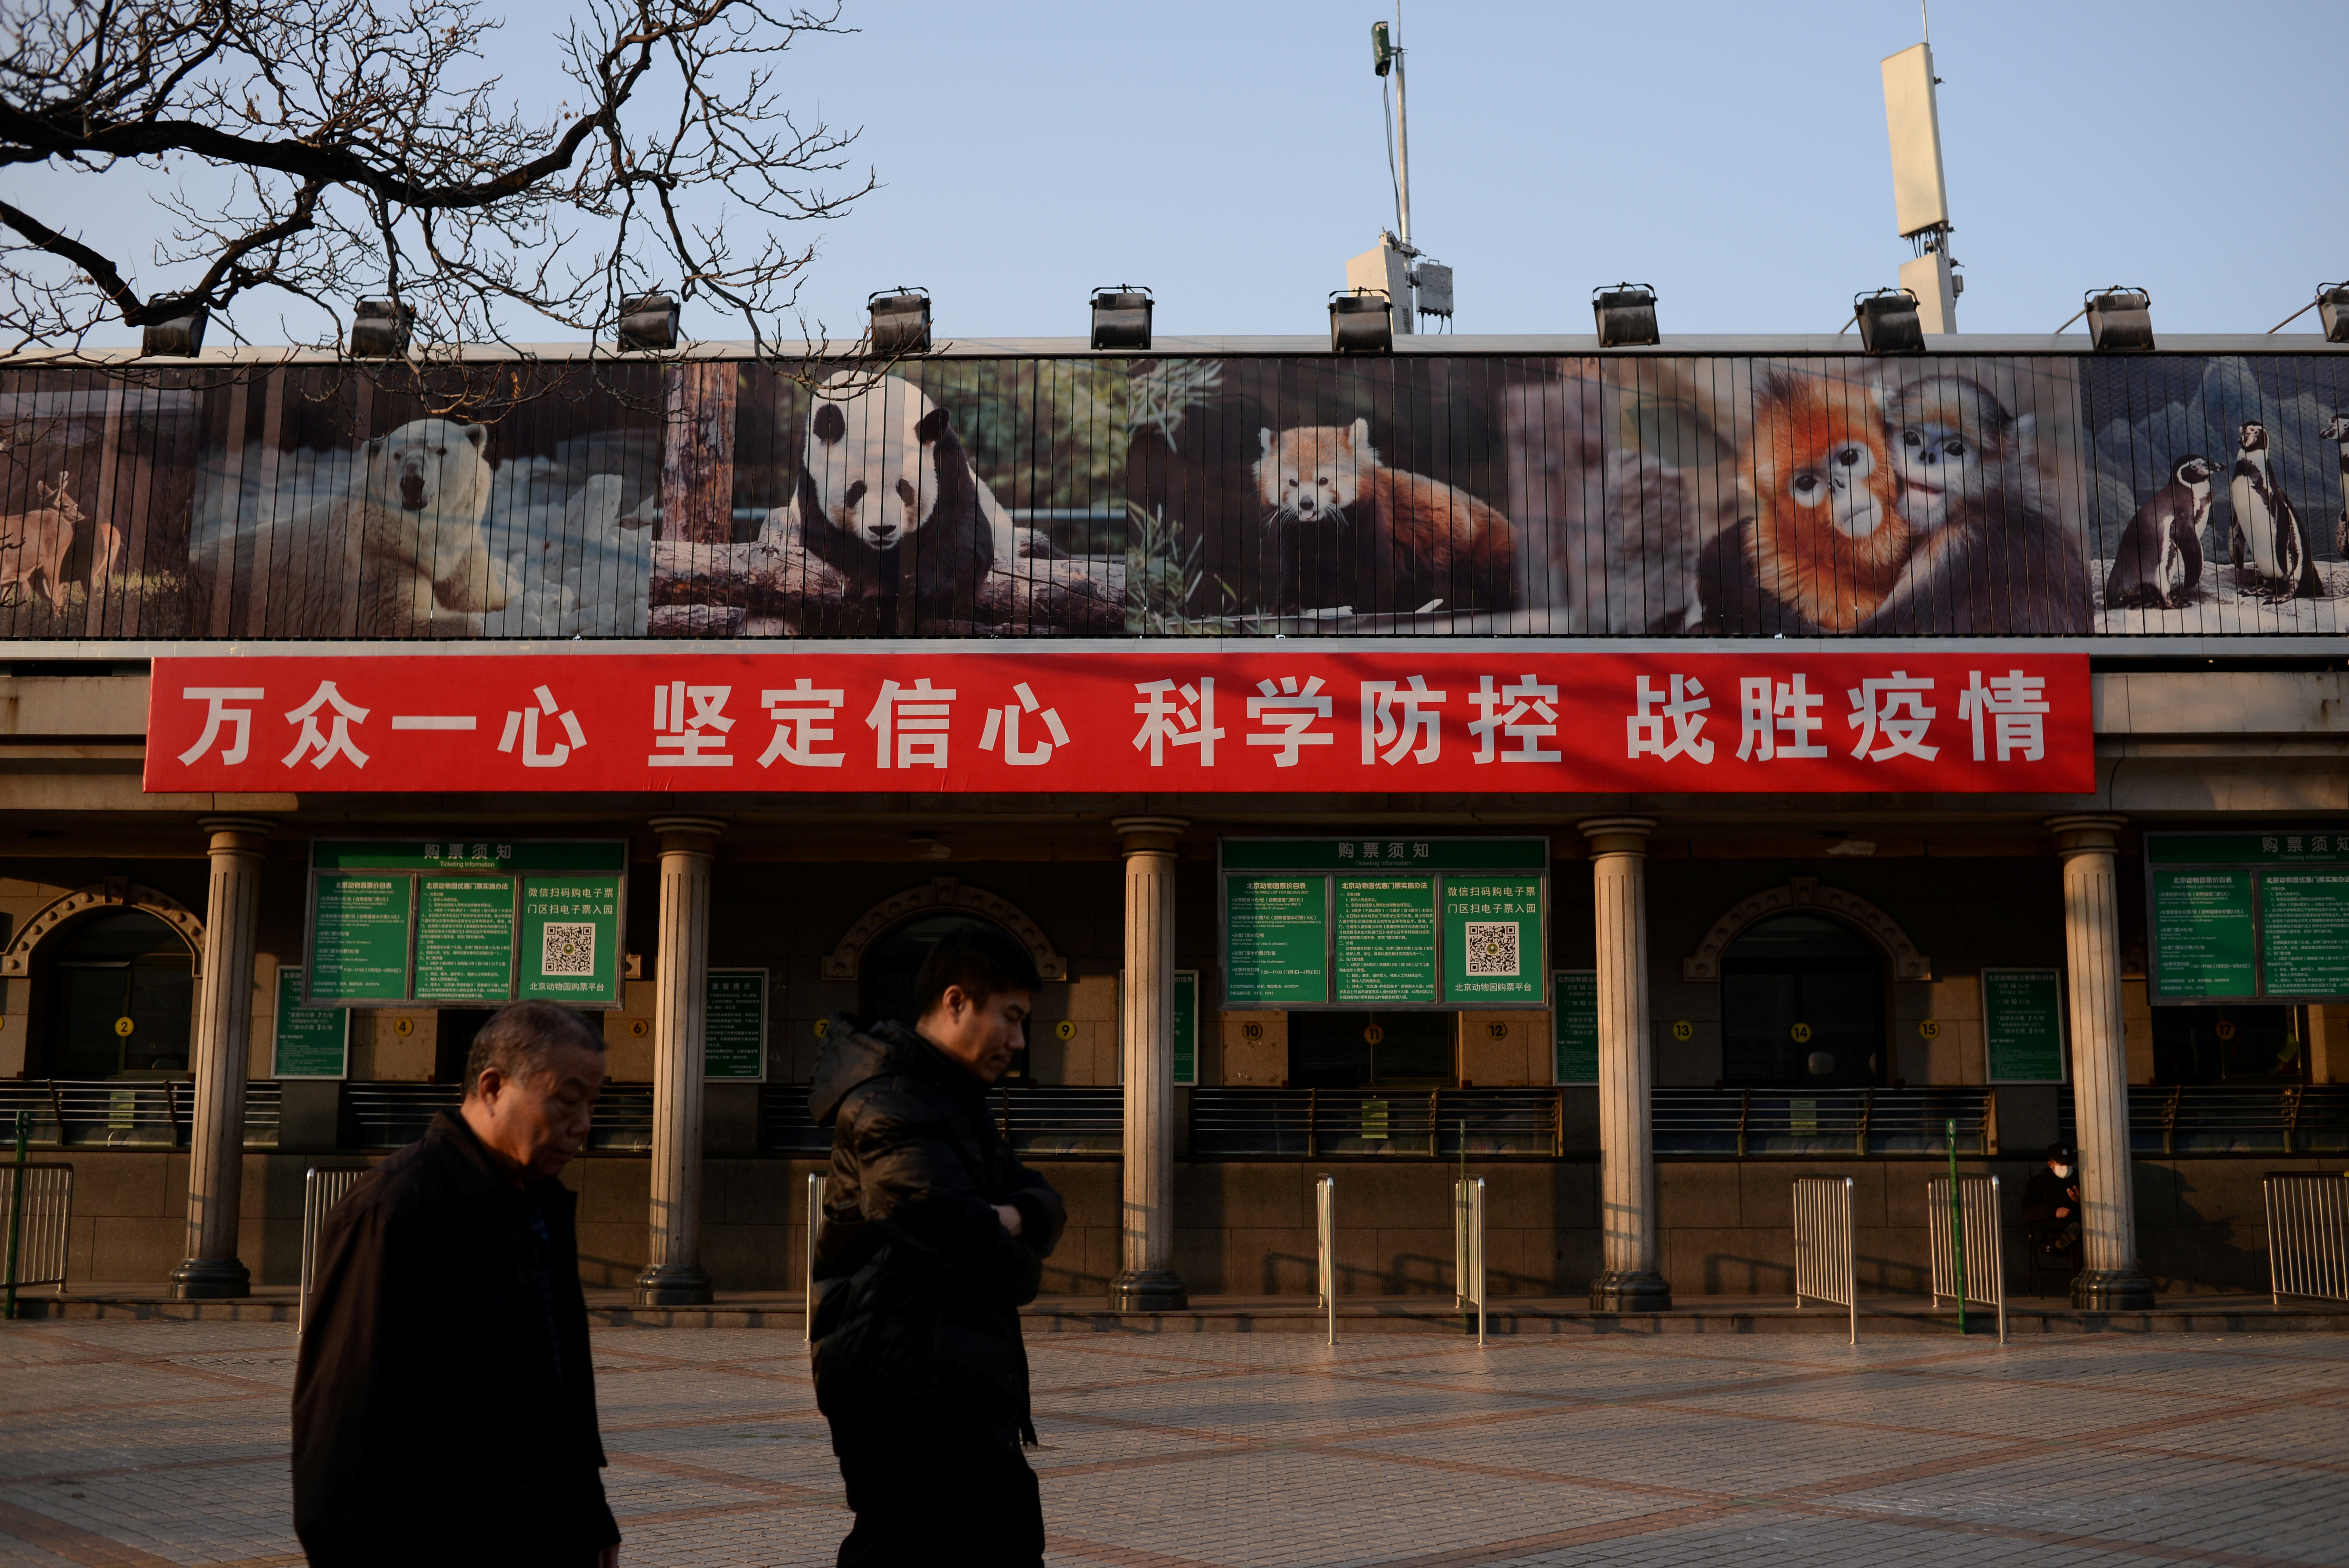 Men walk past a banner hung on the ticket office of the Beijing Zoo that is closed following an outbreak of the novel coronavirus in the country, in Beijing, China February 10, 2020. The Chinese characters on the banner read,